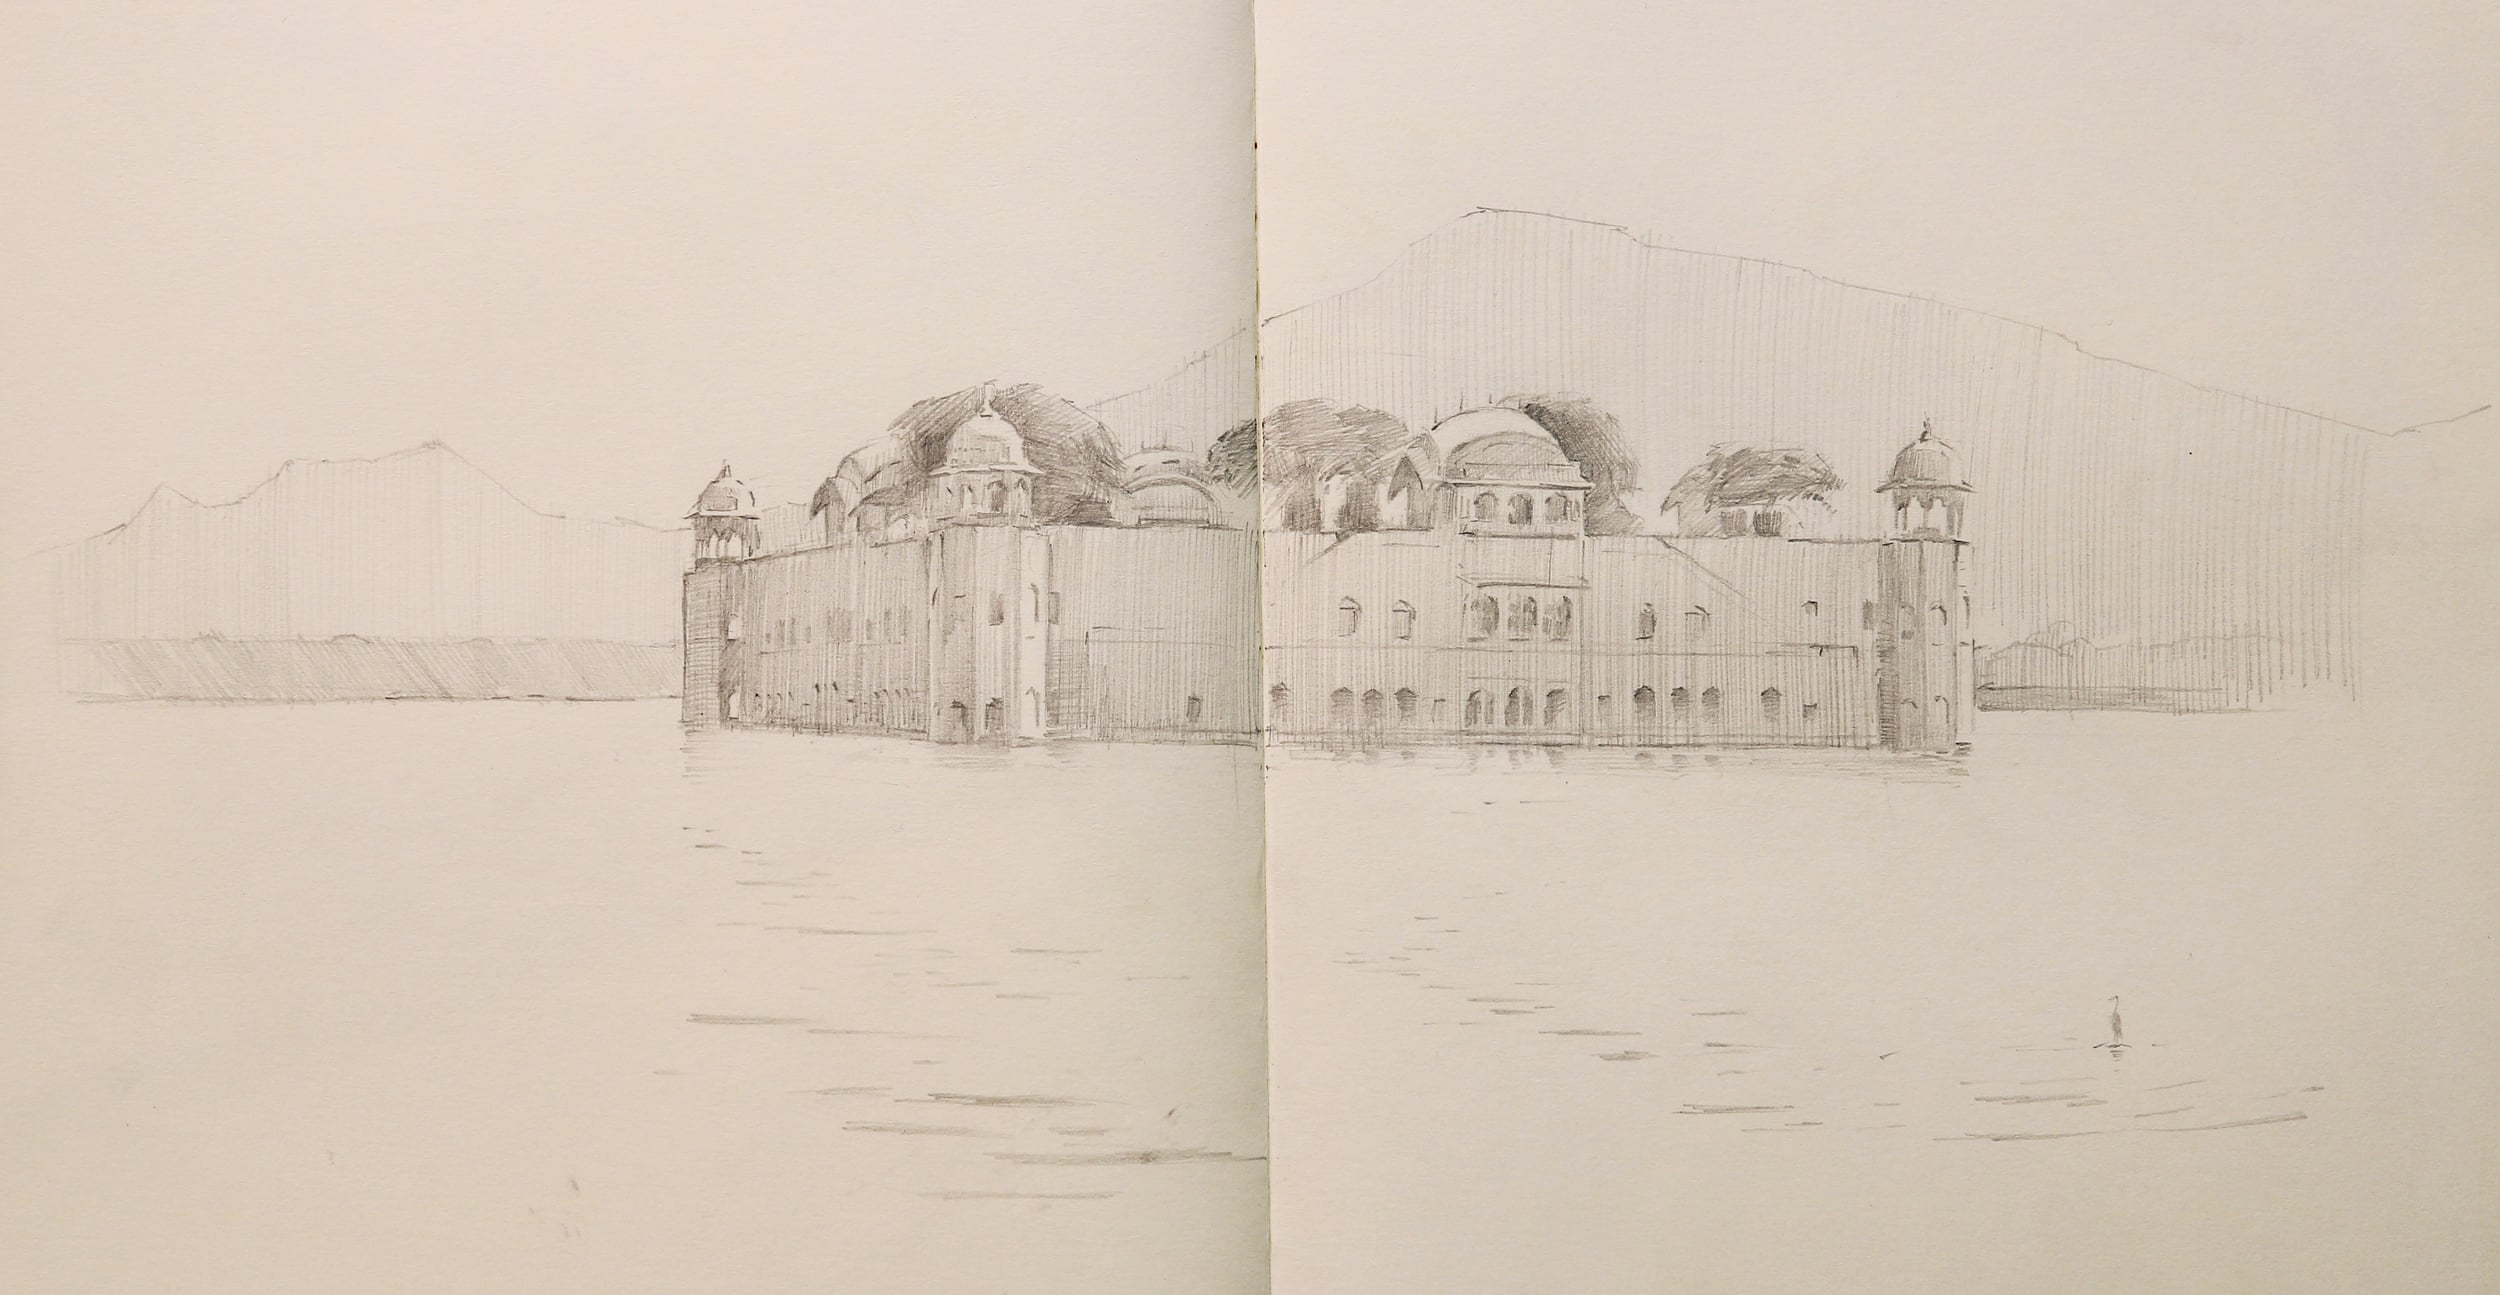 Pencil sketch of Jahl Mahal Palace.